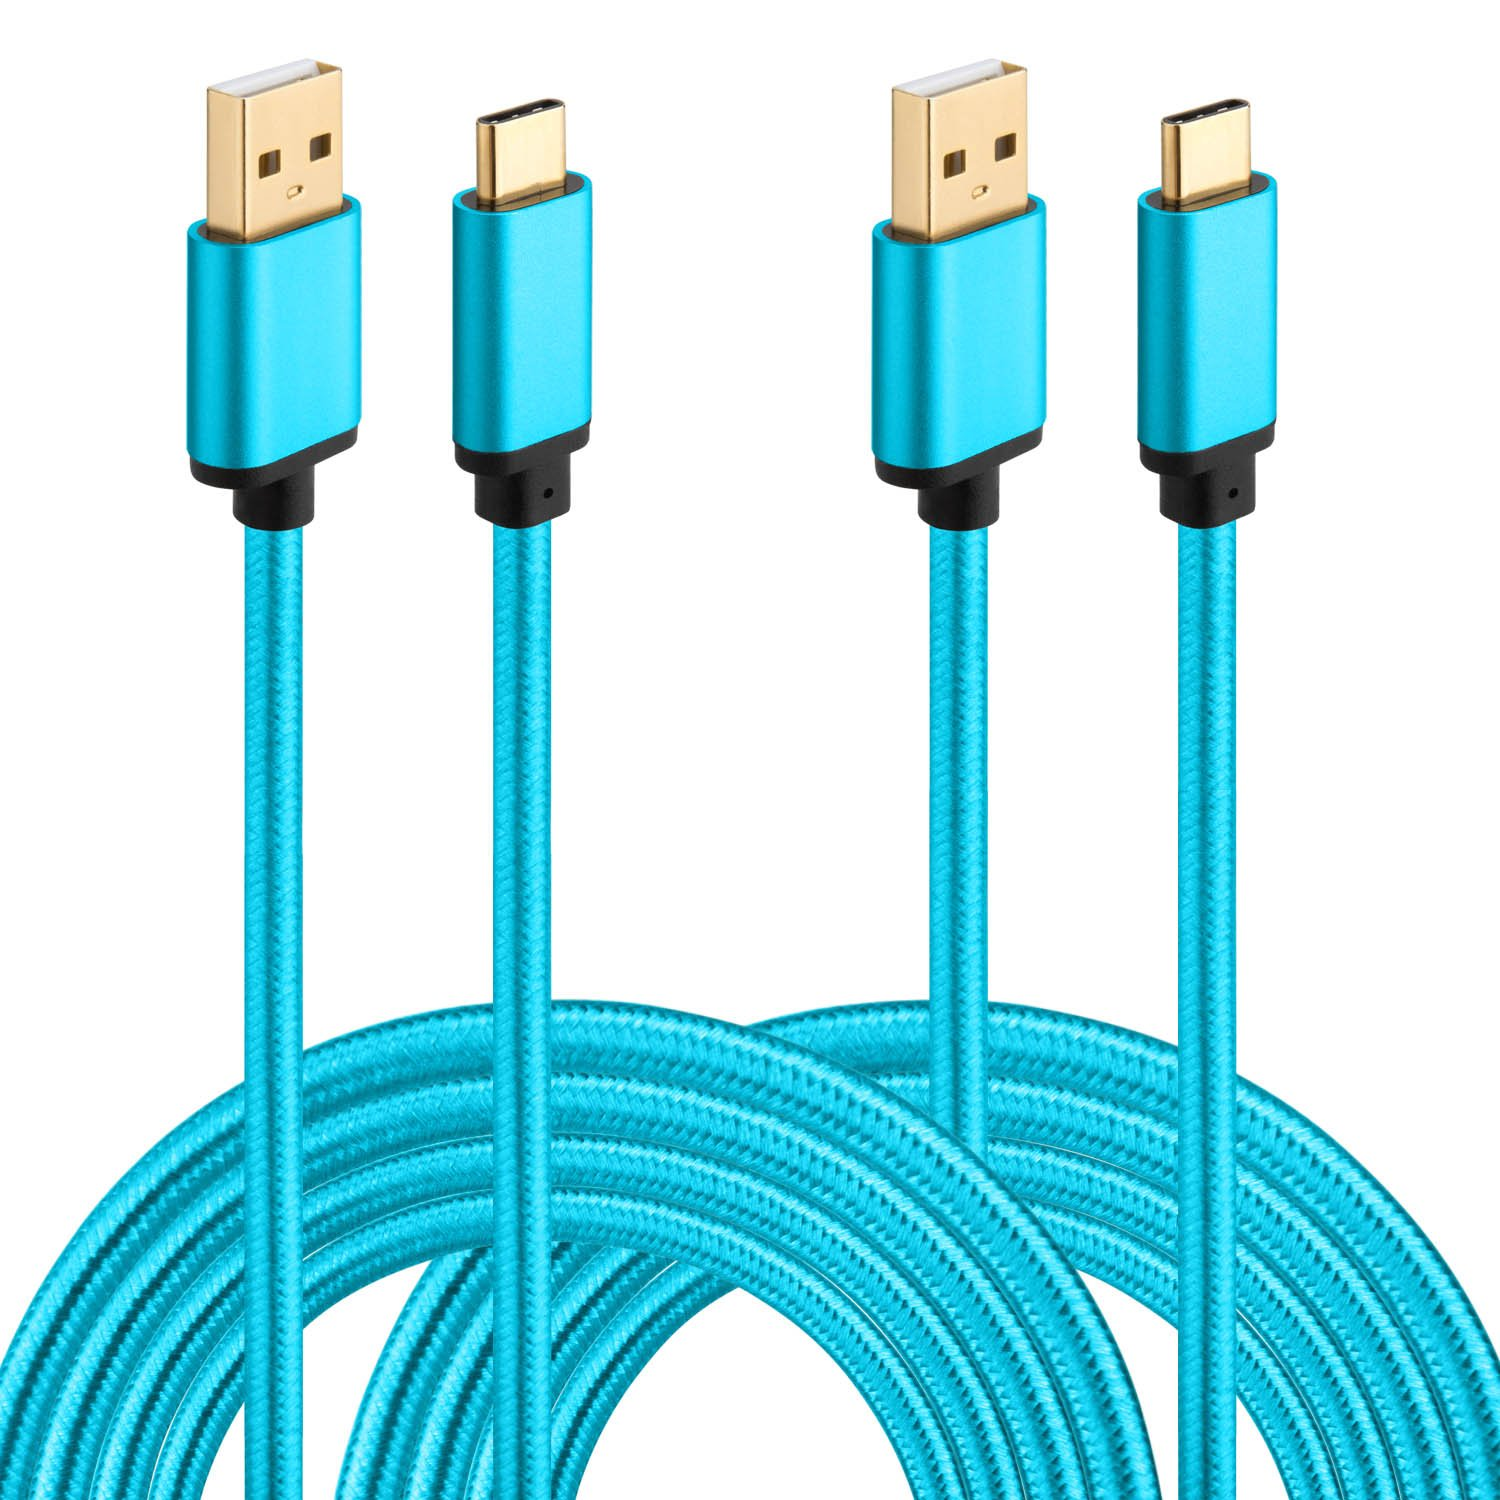 Amazon.com: USB Type C Cable, HI-CABLE USB C to USB A Charger 2-Pack ...